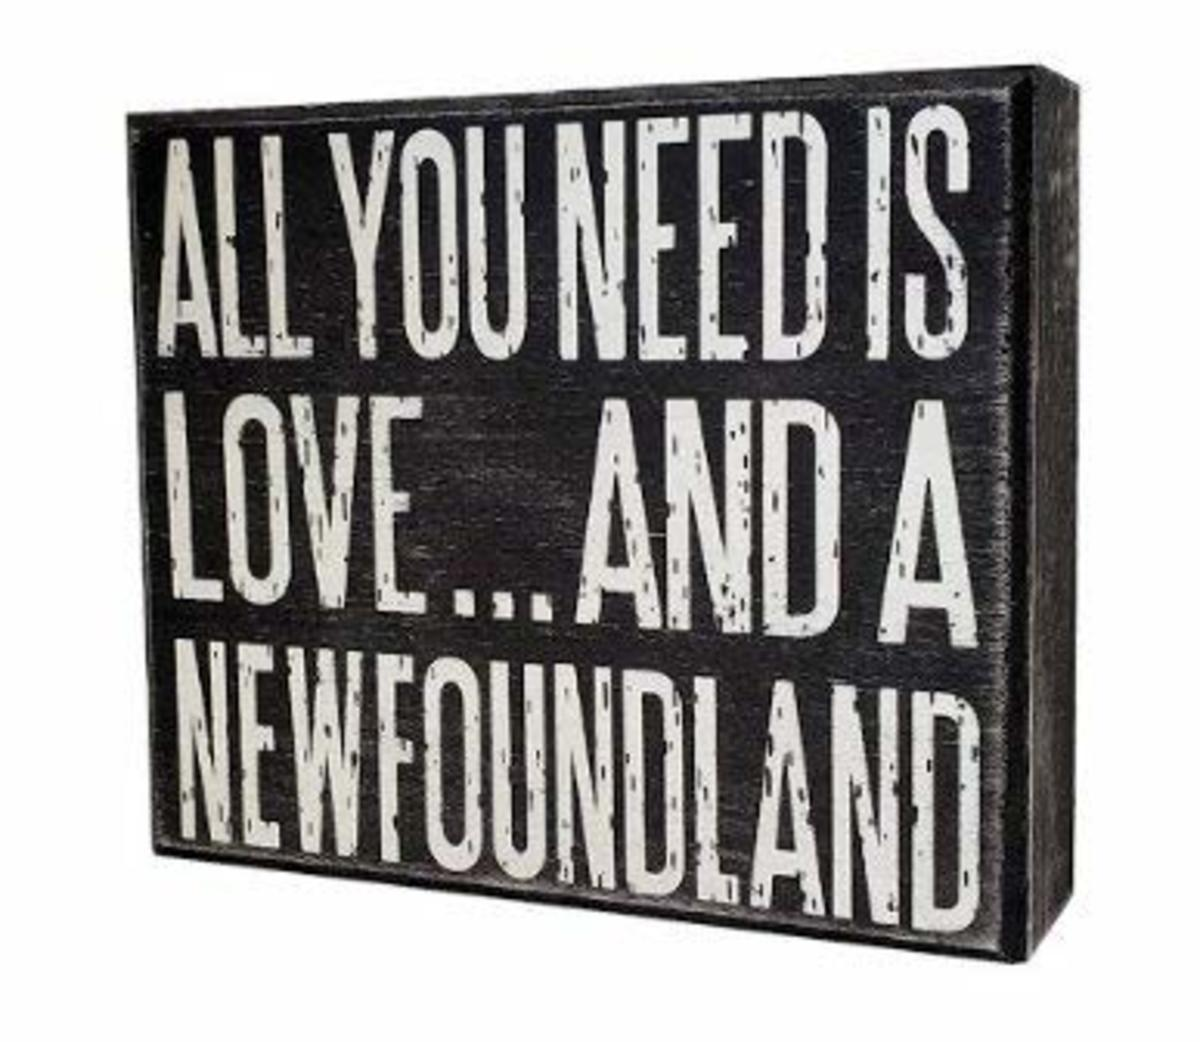 A great gift for any Newfoundland lover!